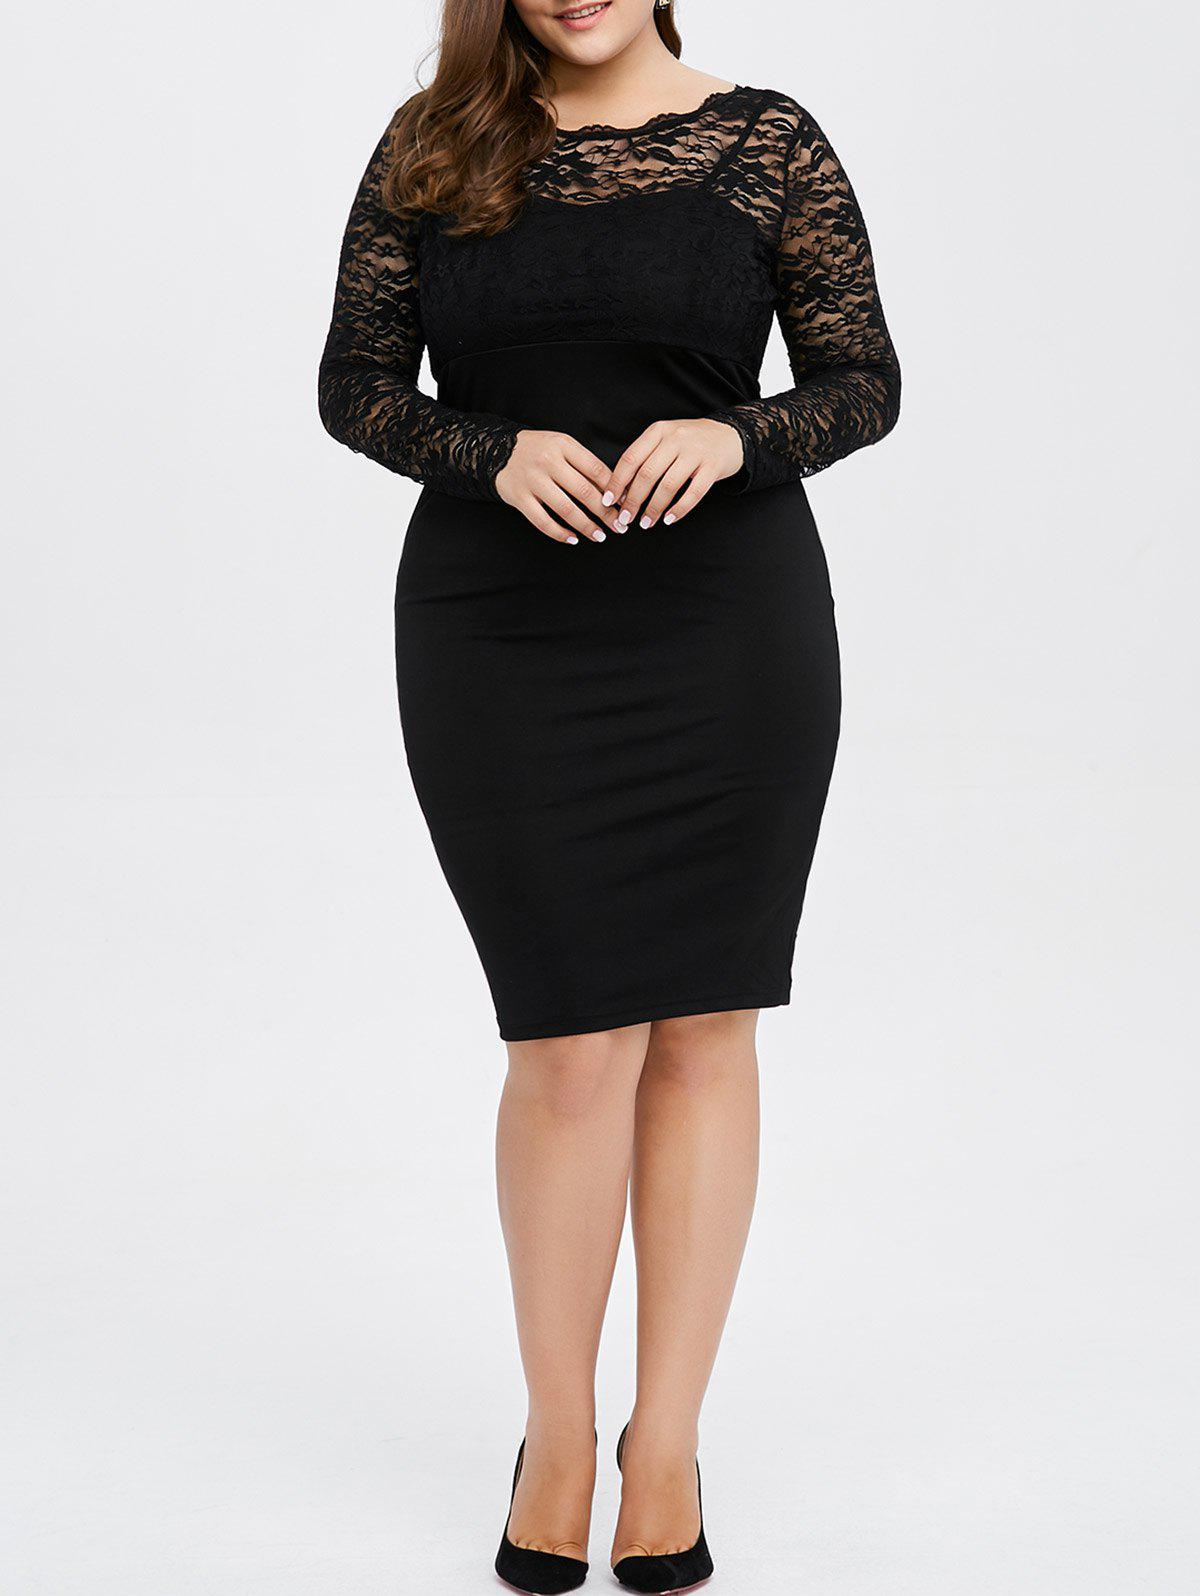 Plus Size Lace Trim Openback Sheath Dress - BLACK 3XL